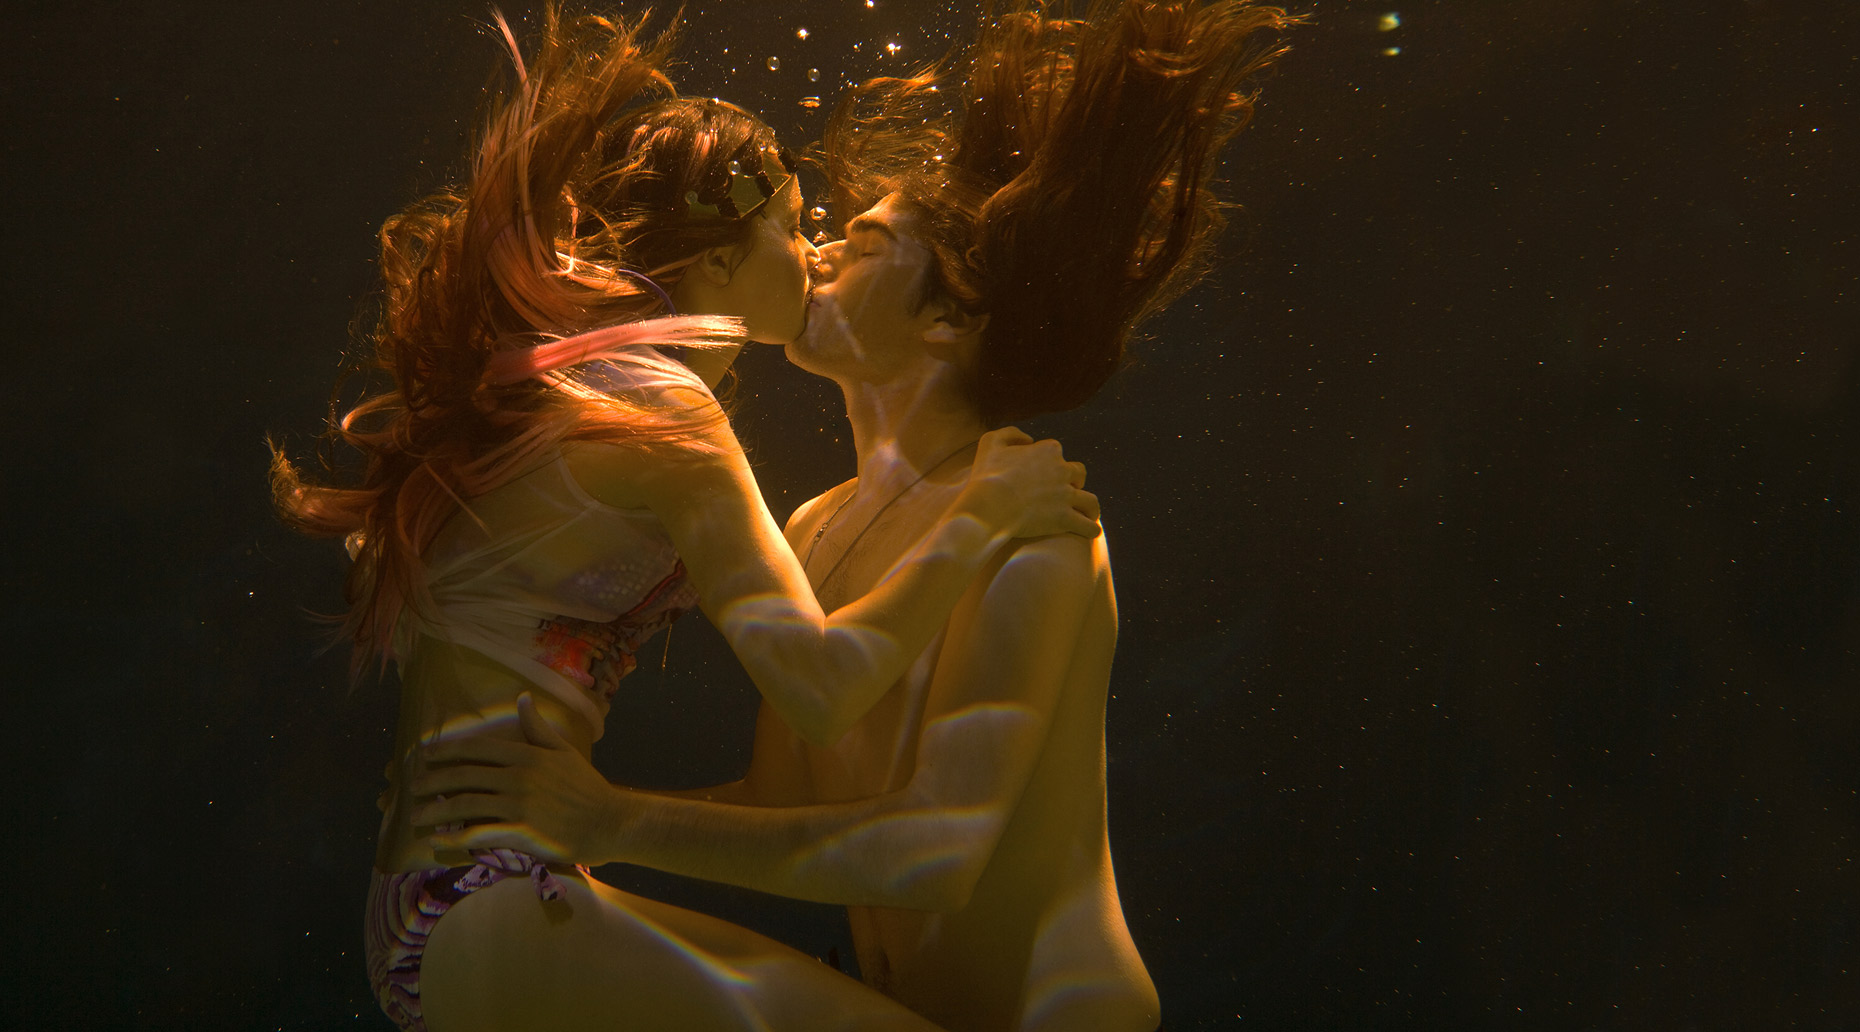 KMR_Glamour-Spain_Underwater-Love-Story_510_HR